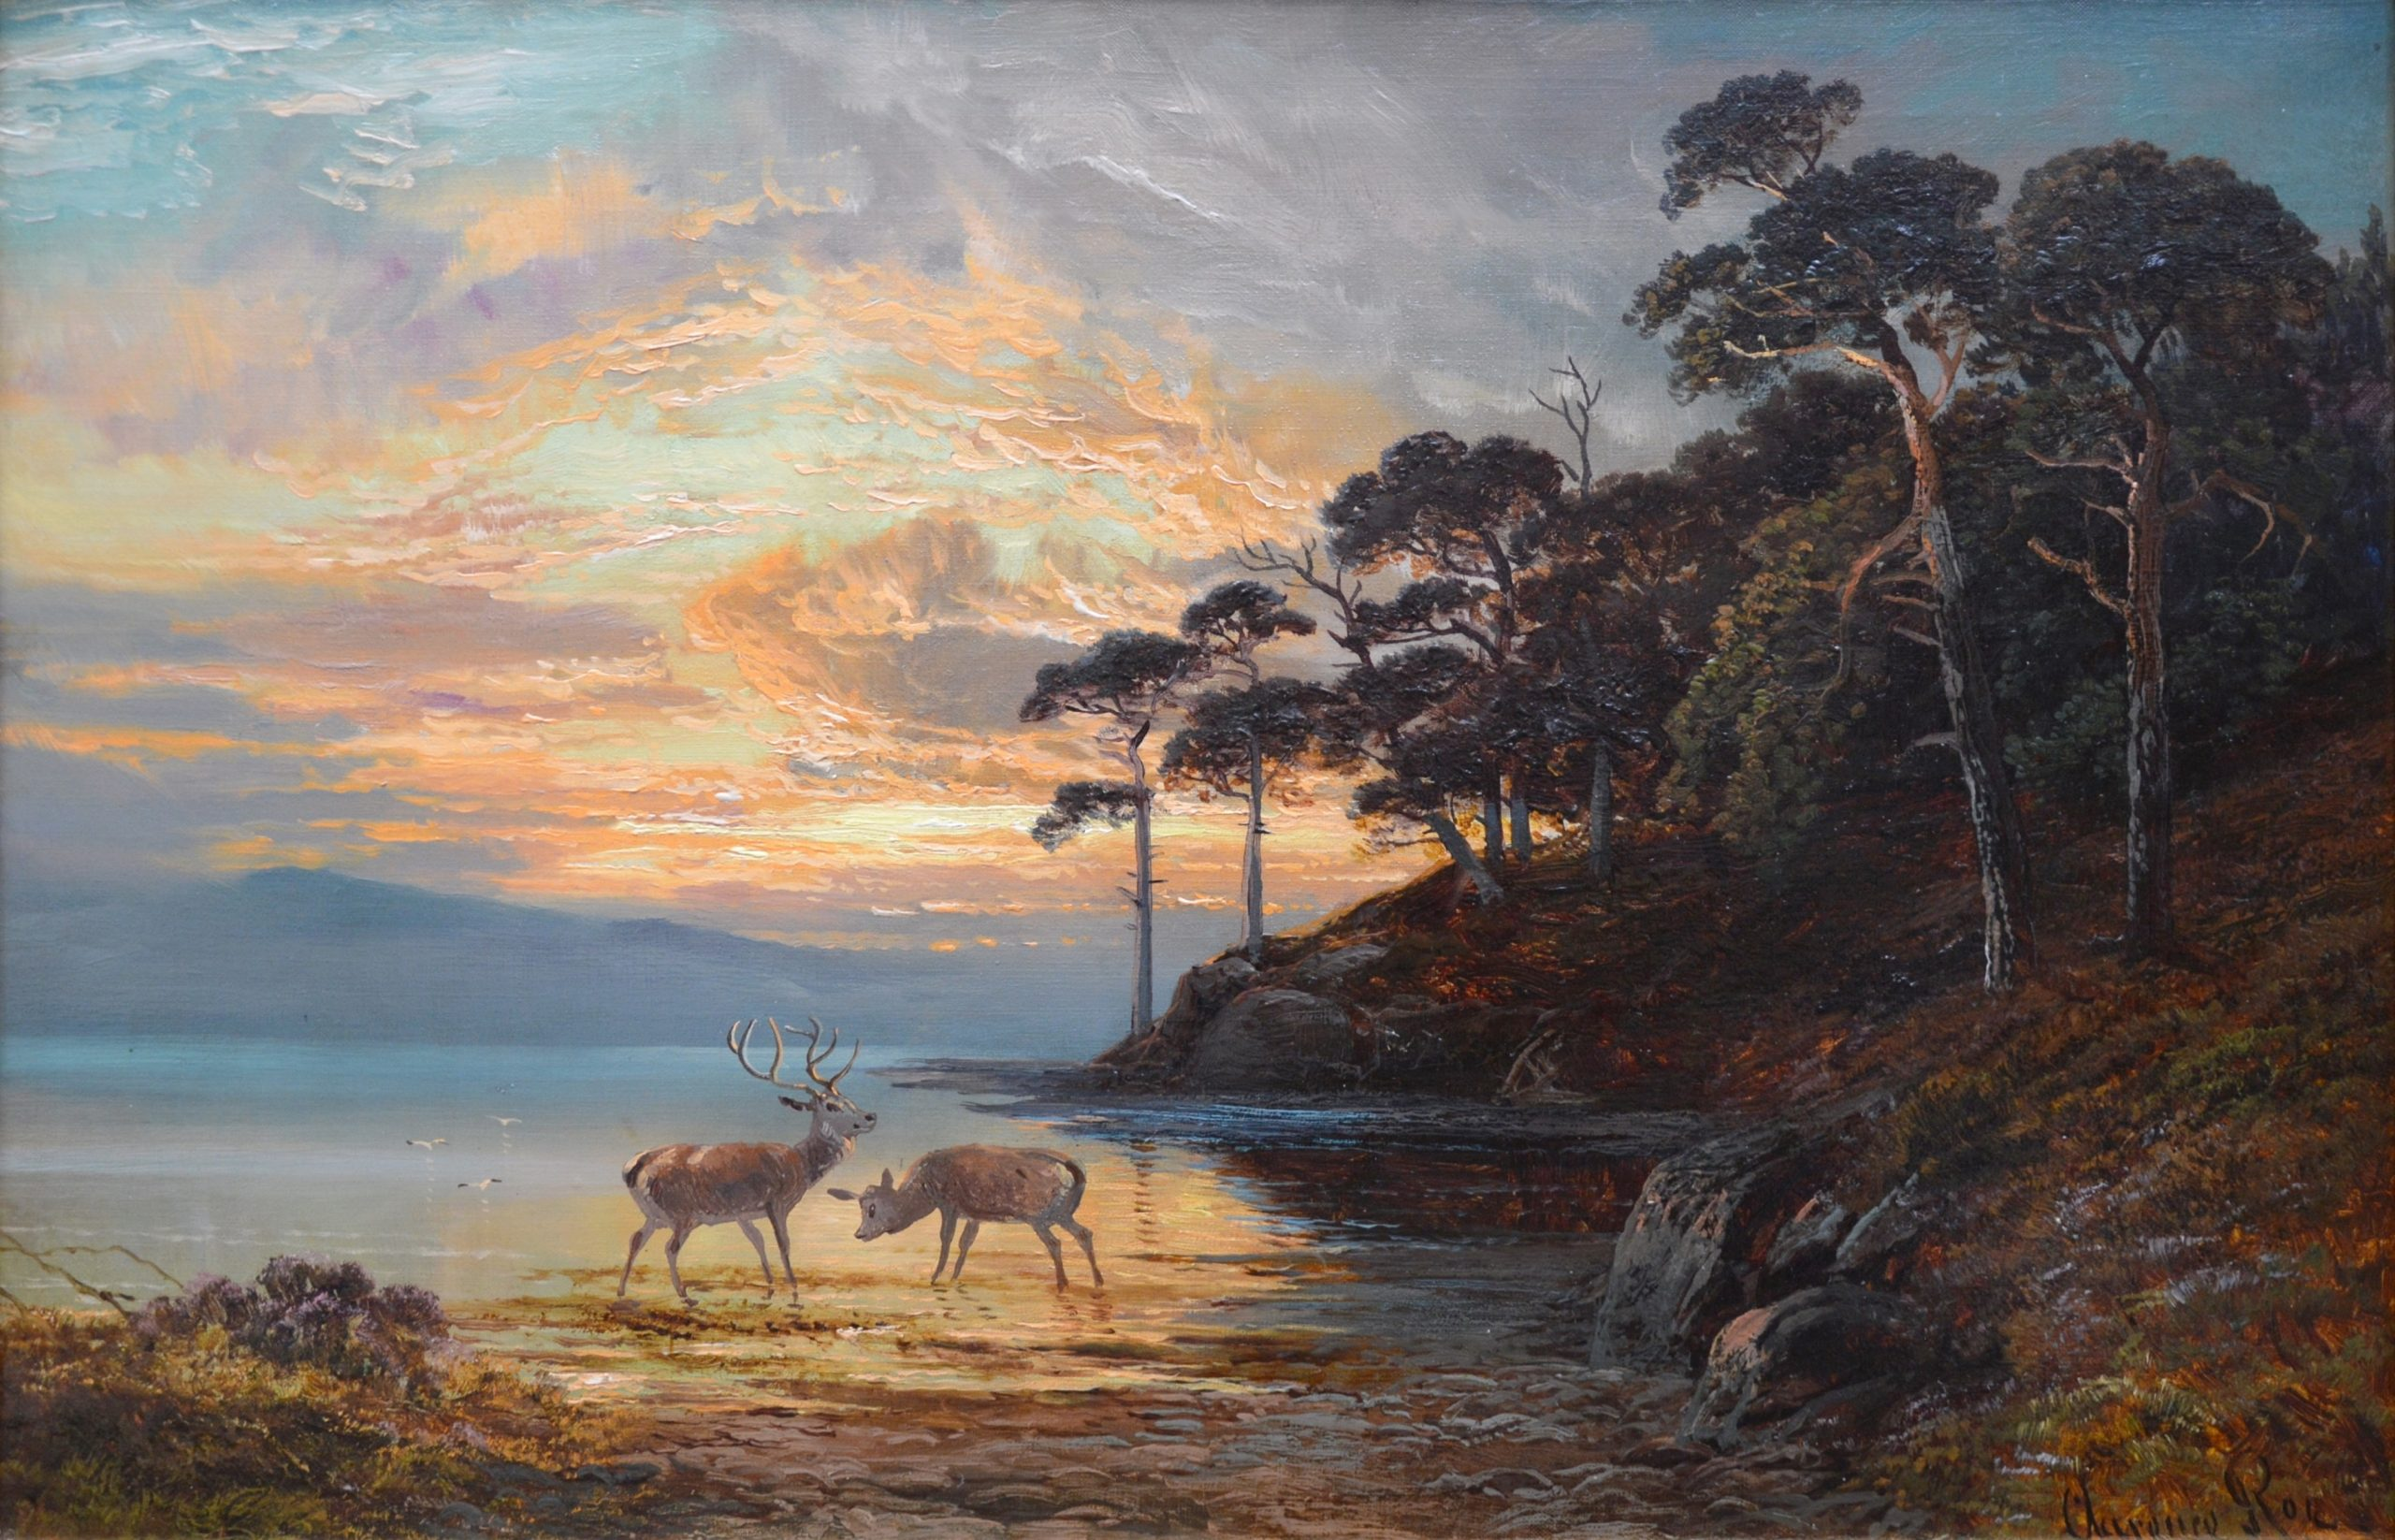 Sunset, Loch Katrine - 19th Century Scottish Landscape Oil Painting Image